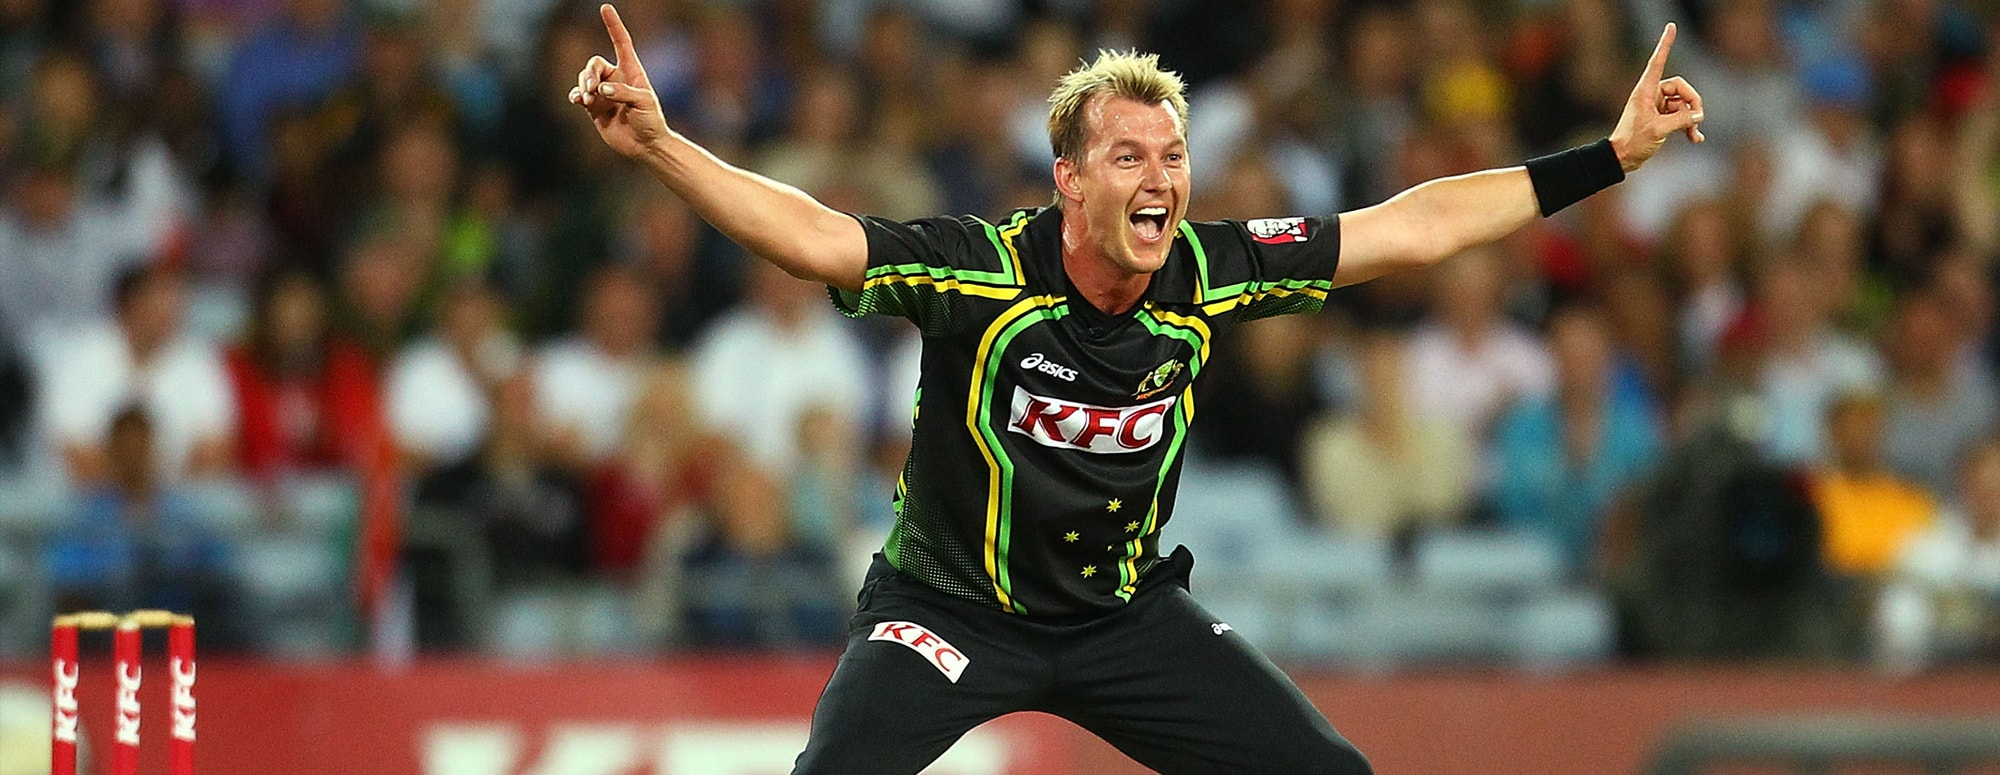 """Boom Boom"" Afridi and Aussie Legend Brett Lee join the Happiness Sim Cricket 6s as 2019 Ambassadors"